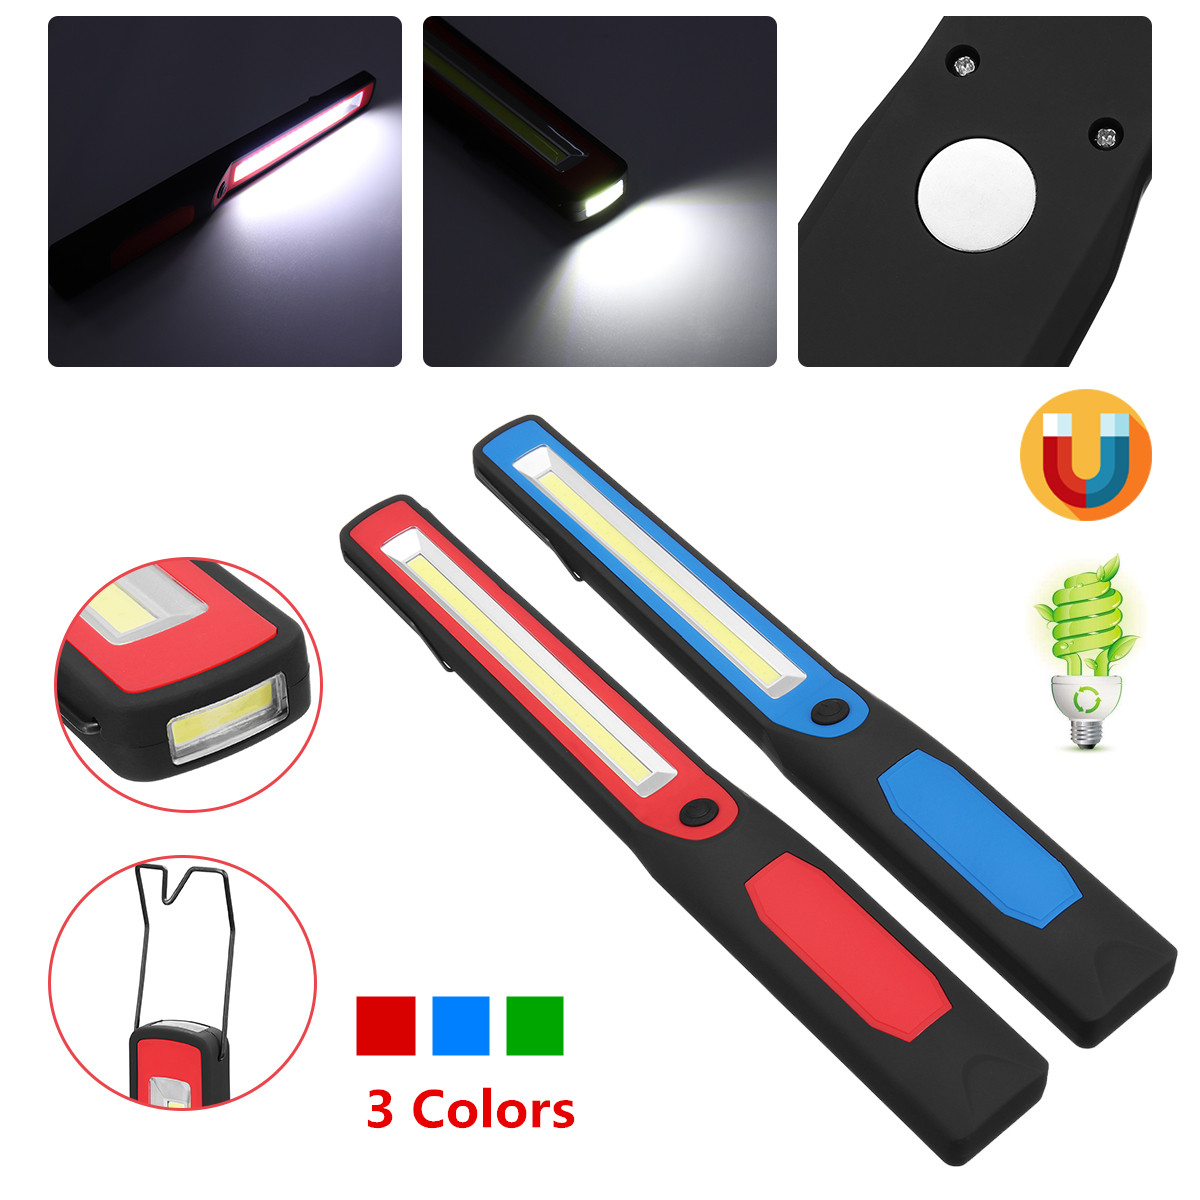 COB Flashlight Torch Magnetic LED Work Light USB Rechargeable COB Working Lamp 18650 Or AA Battery For Camping Car RepairingCOB Flashlight Torch Magnetic LED Work Light USB Rechargeable COB Working Lamp 18650 Or AA Battery For Camping Car Repairing